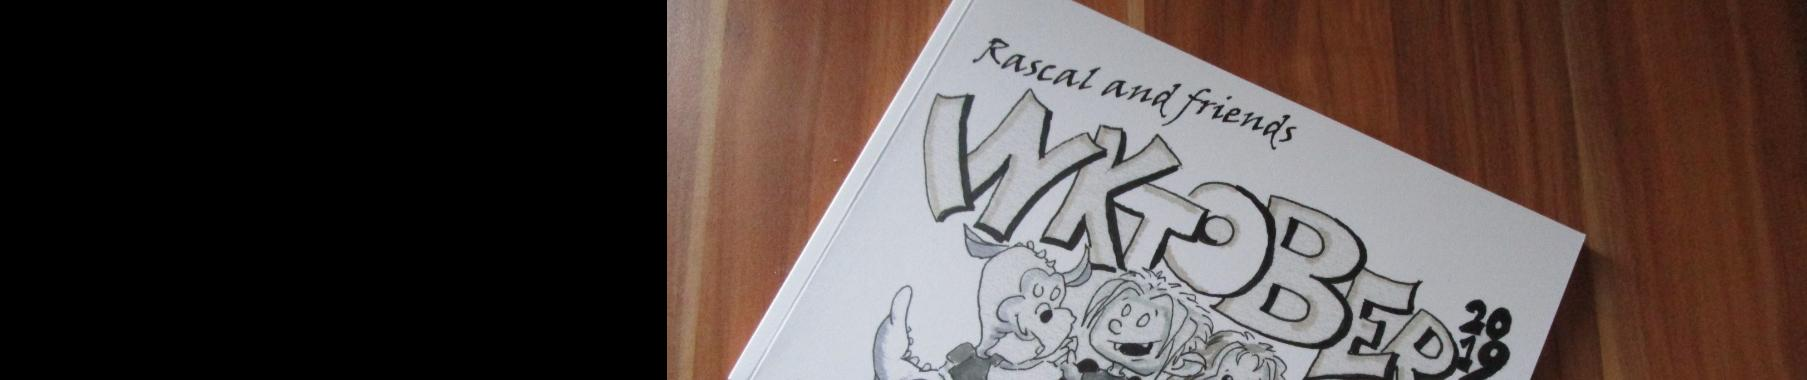 Boekrecensie: Rascal and friends, Dinie de Zeeuw